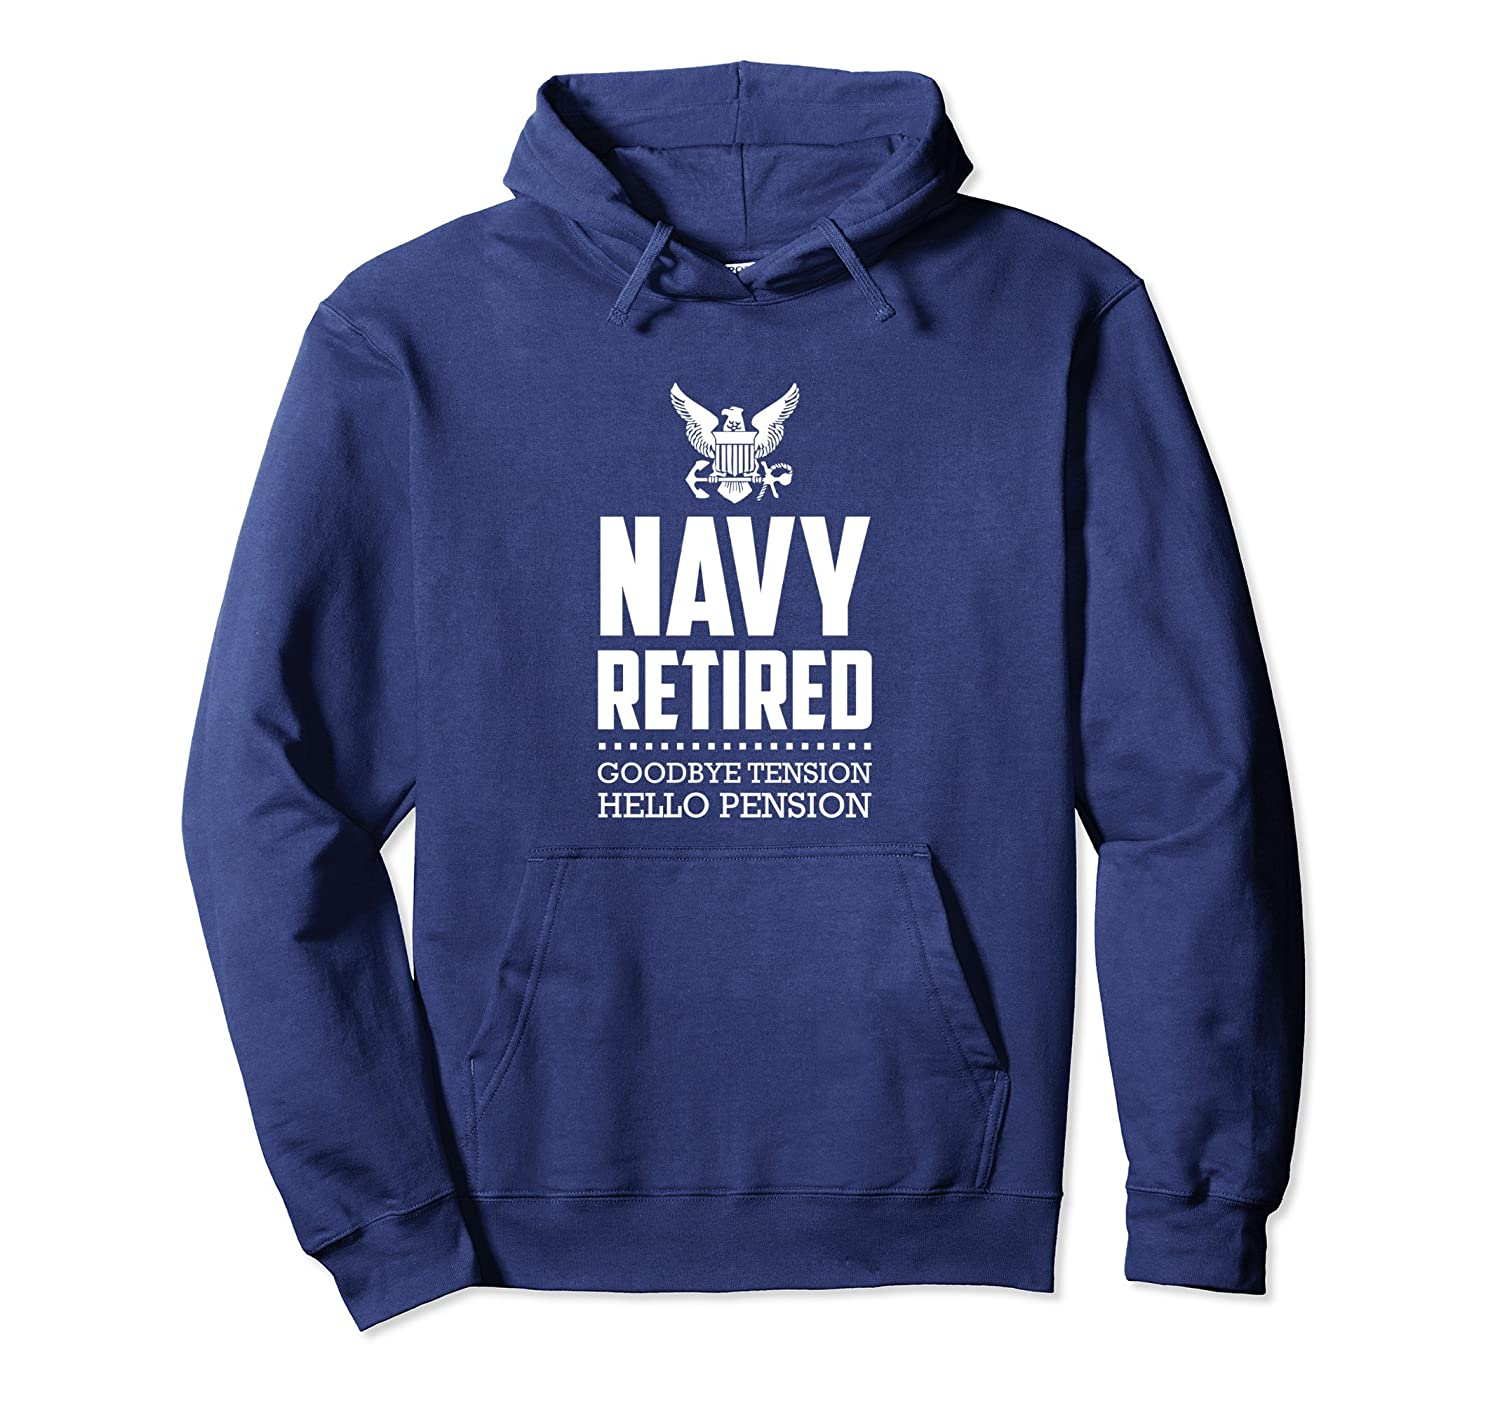 US Navy Retired Shirts - Goodbye Tension Hello Pension 10489-4LVS